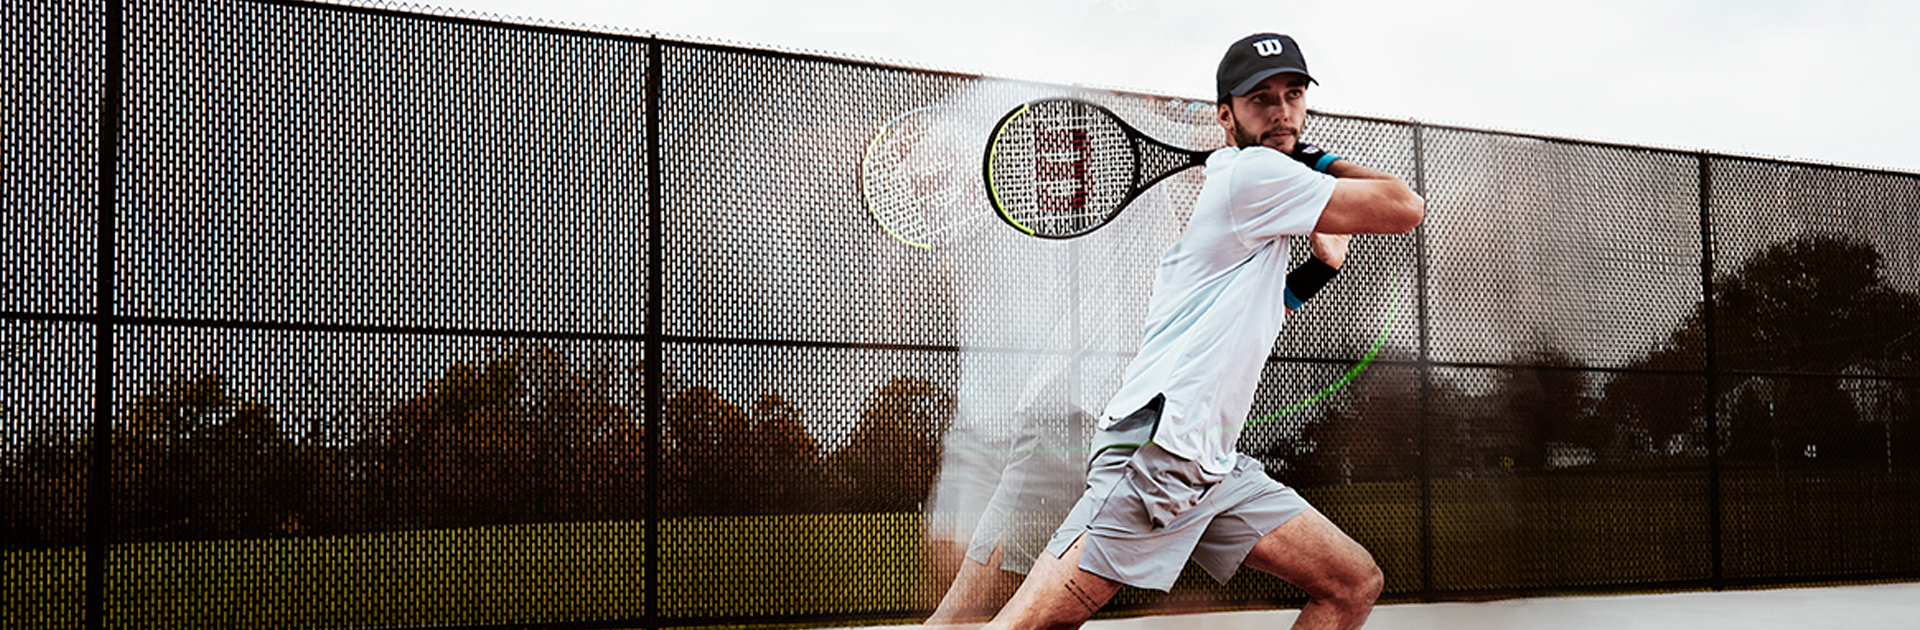 Tennis player photo in slow motion forehand